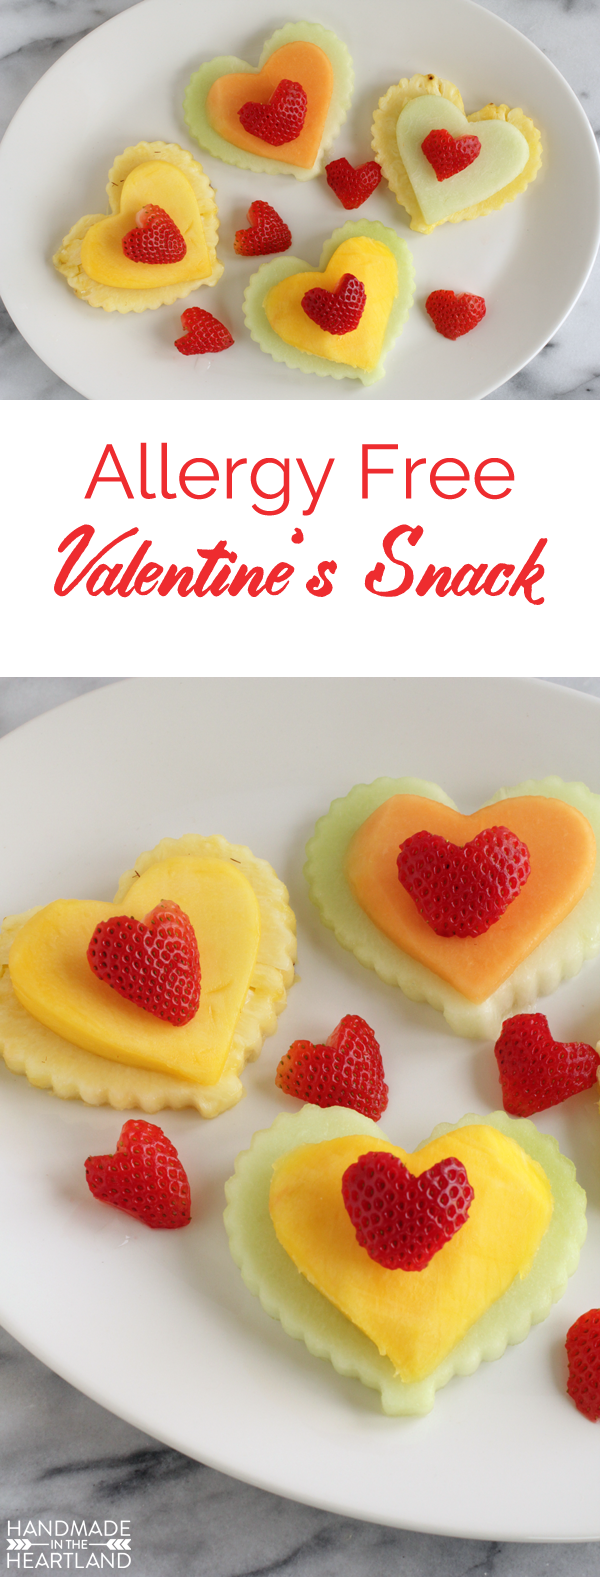 Allergy Free Valentine's Day Snack